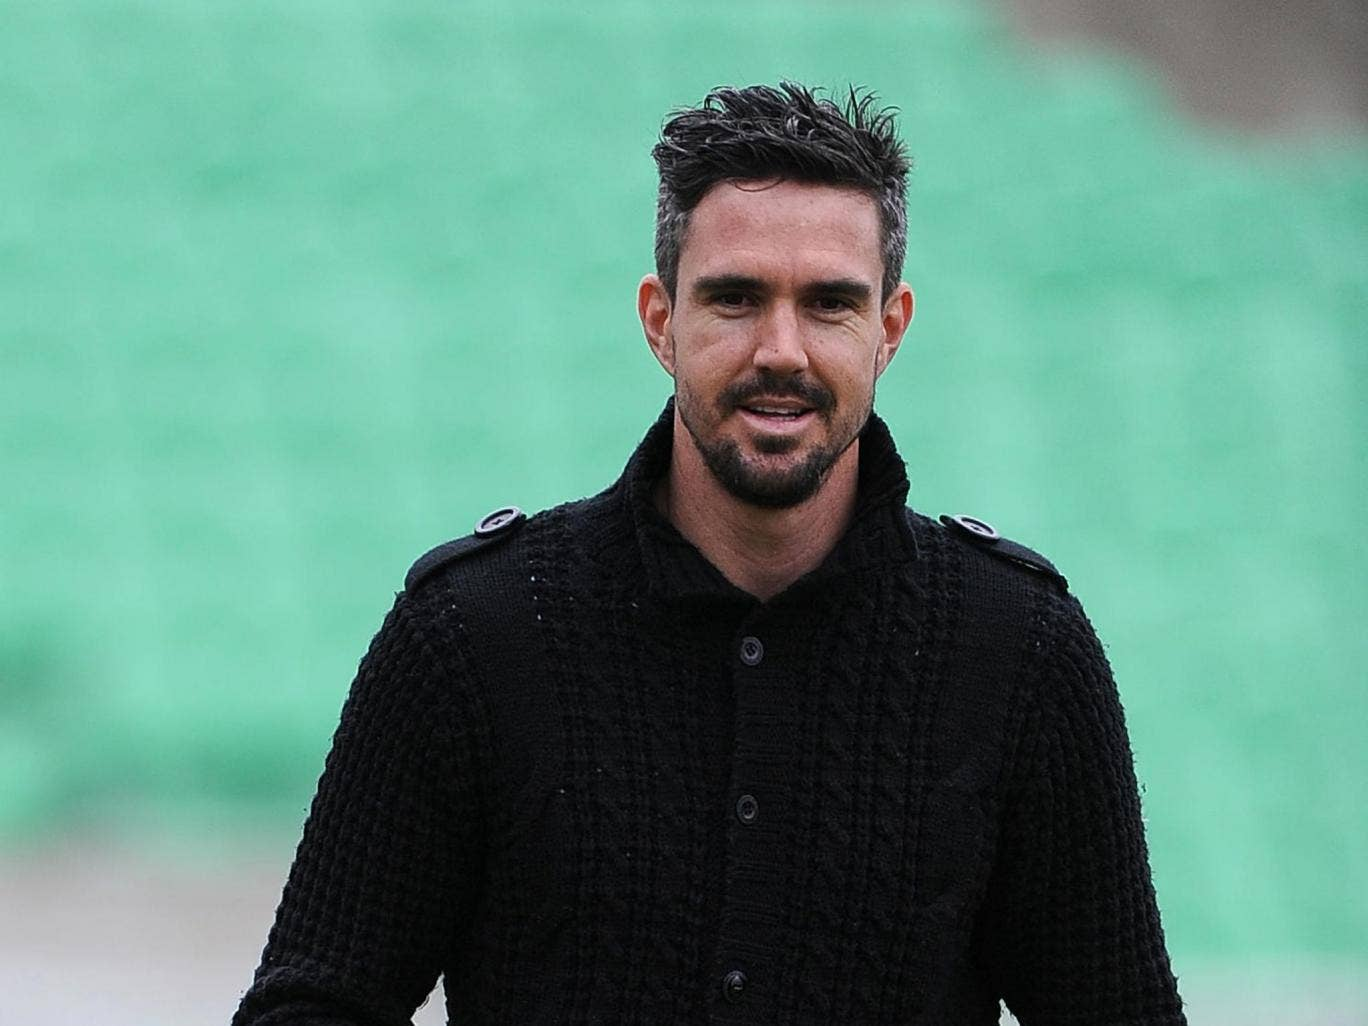 Kevin Pietersen has said in India that he regrets 'textgate' but does not rule out an England return